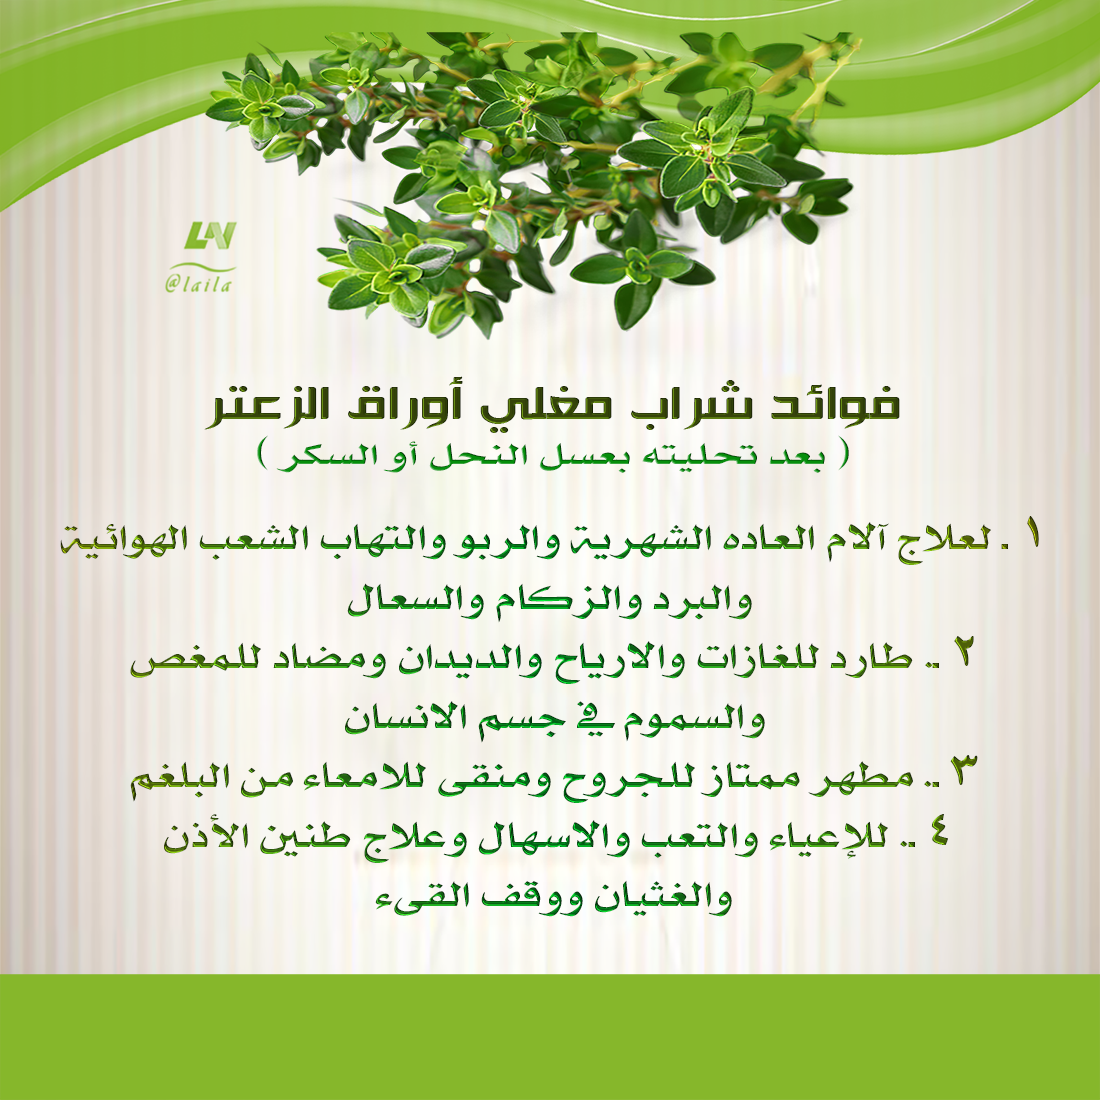 Pin By Arwa On استشفوا بالغذاء والأعشاب Health Fitness Nutrition Medical Herbs Health And Nutrition